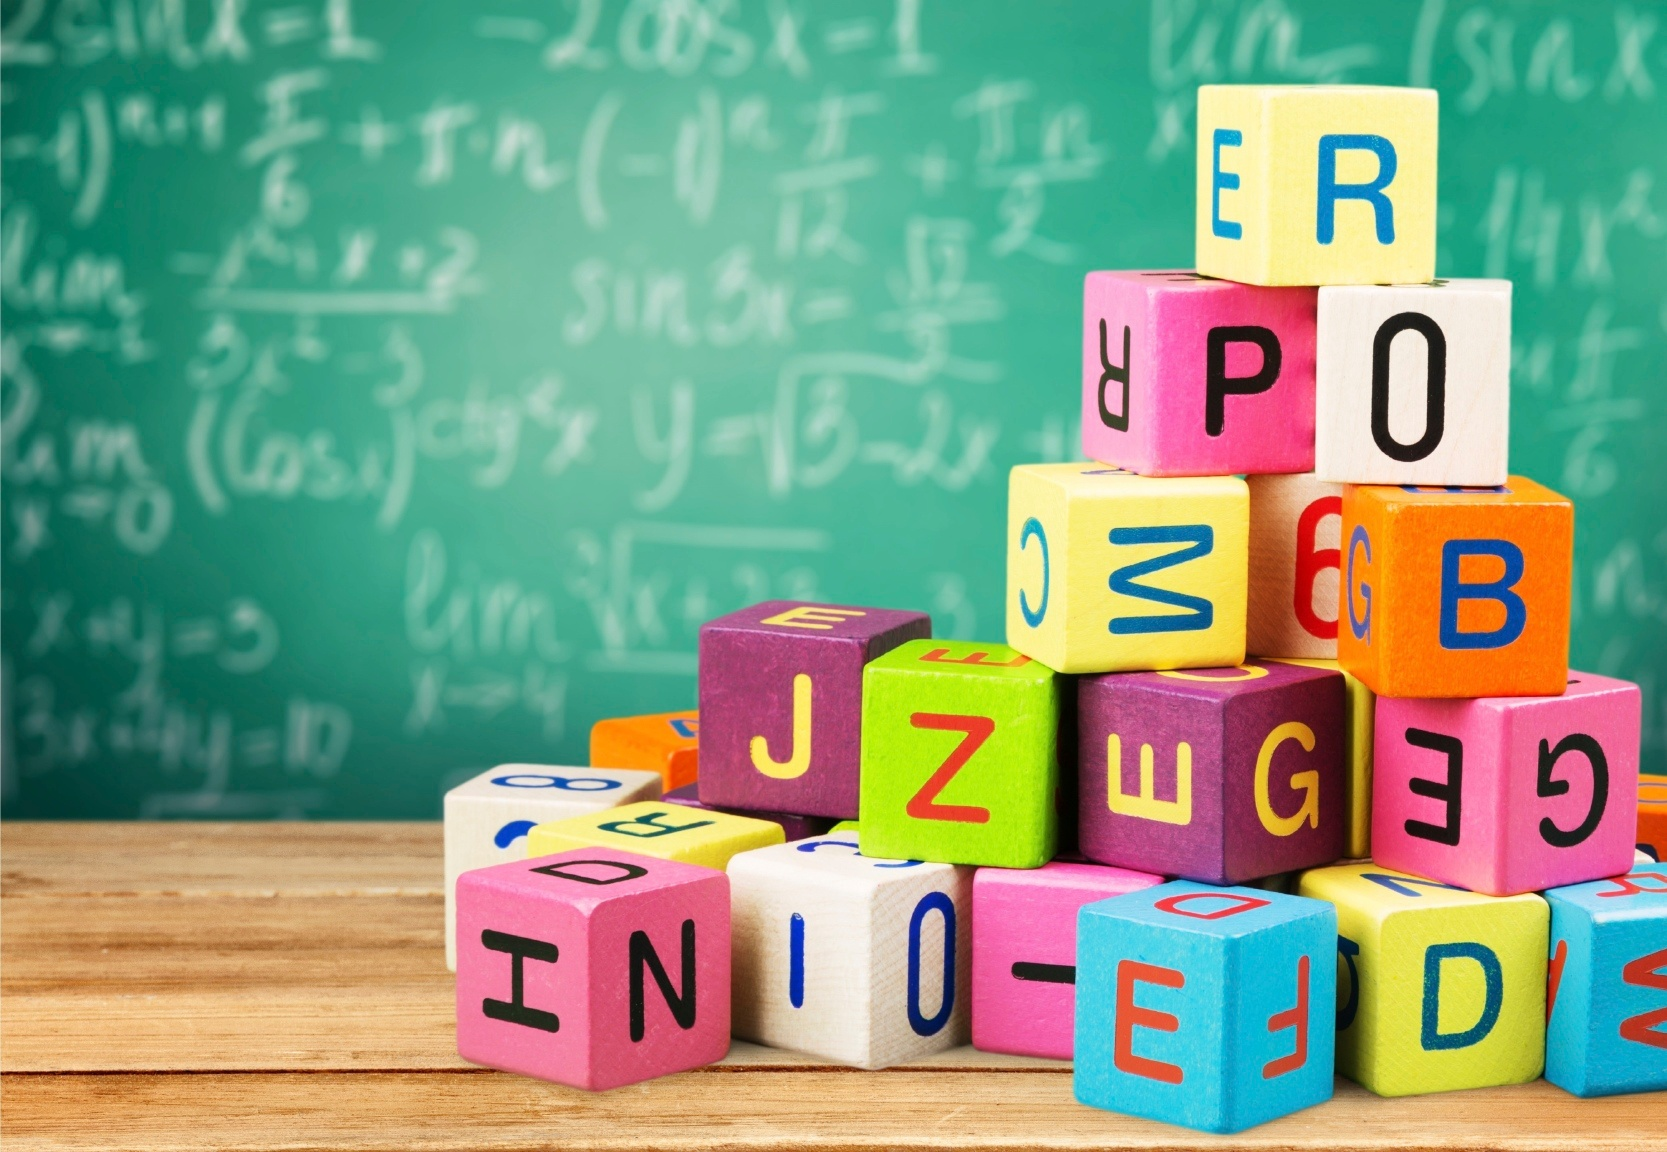 colorful-building-blocks-of-letters-flesch-reading-ease